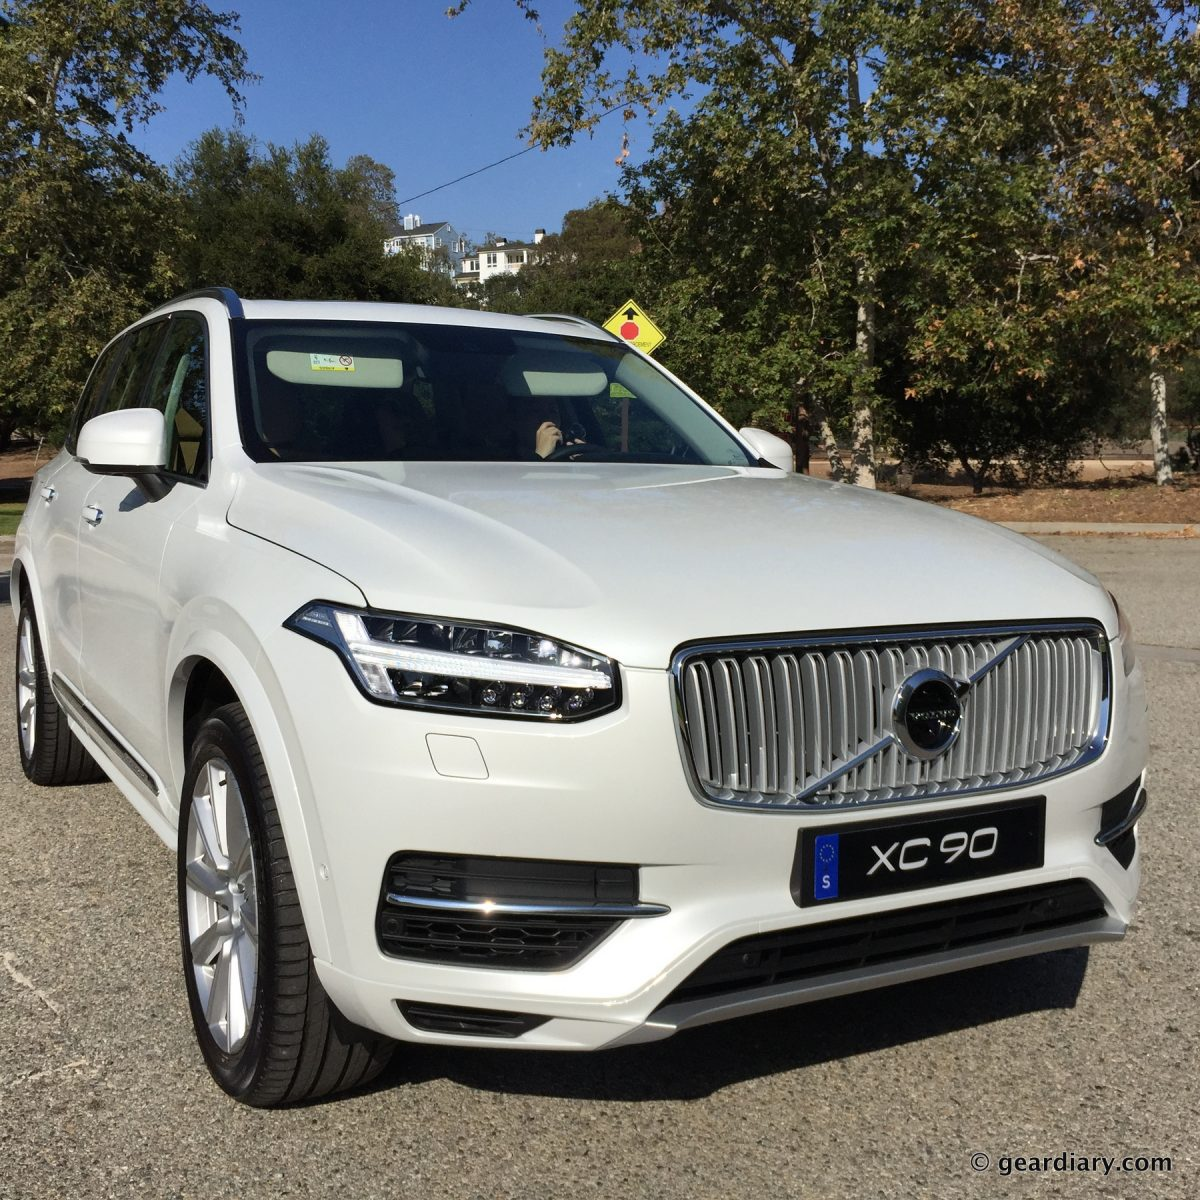 Volvo Xc90 Price: 2016 Volvo XC90 Test Drive: Two Versions Of One Luxurious